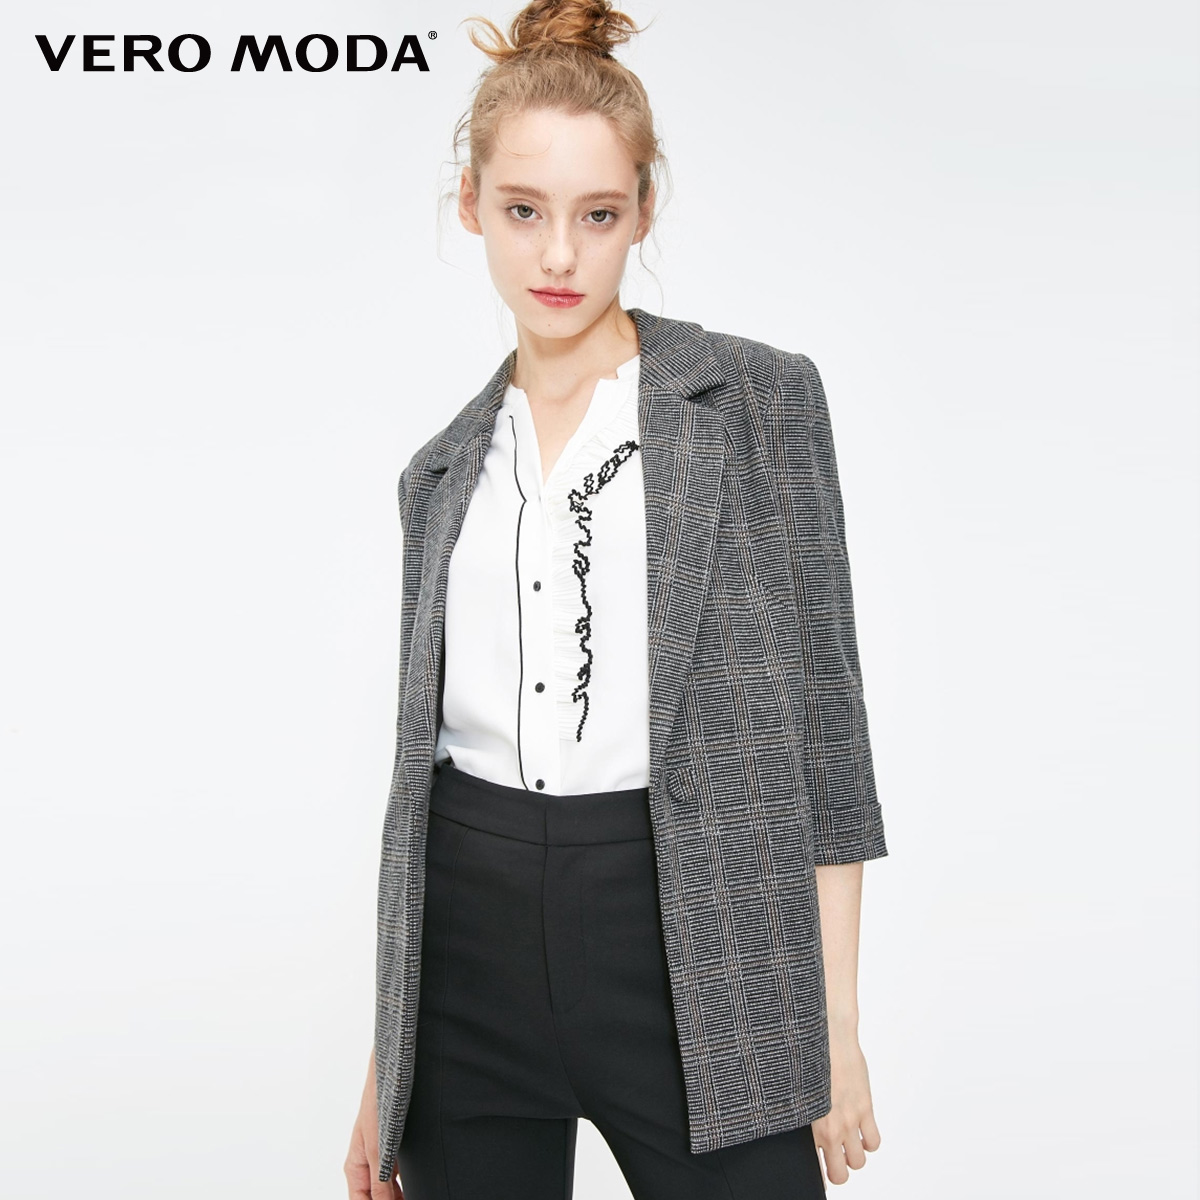 Vero Moda workplace Plaid Lapel 3 / 4 sleeve suit coat for women 31911k505